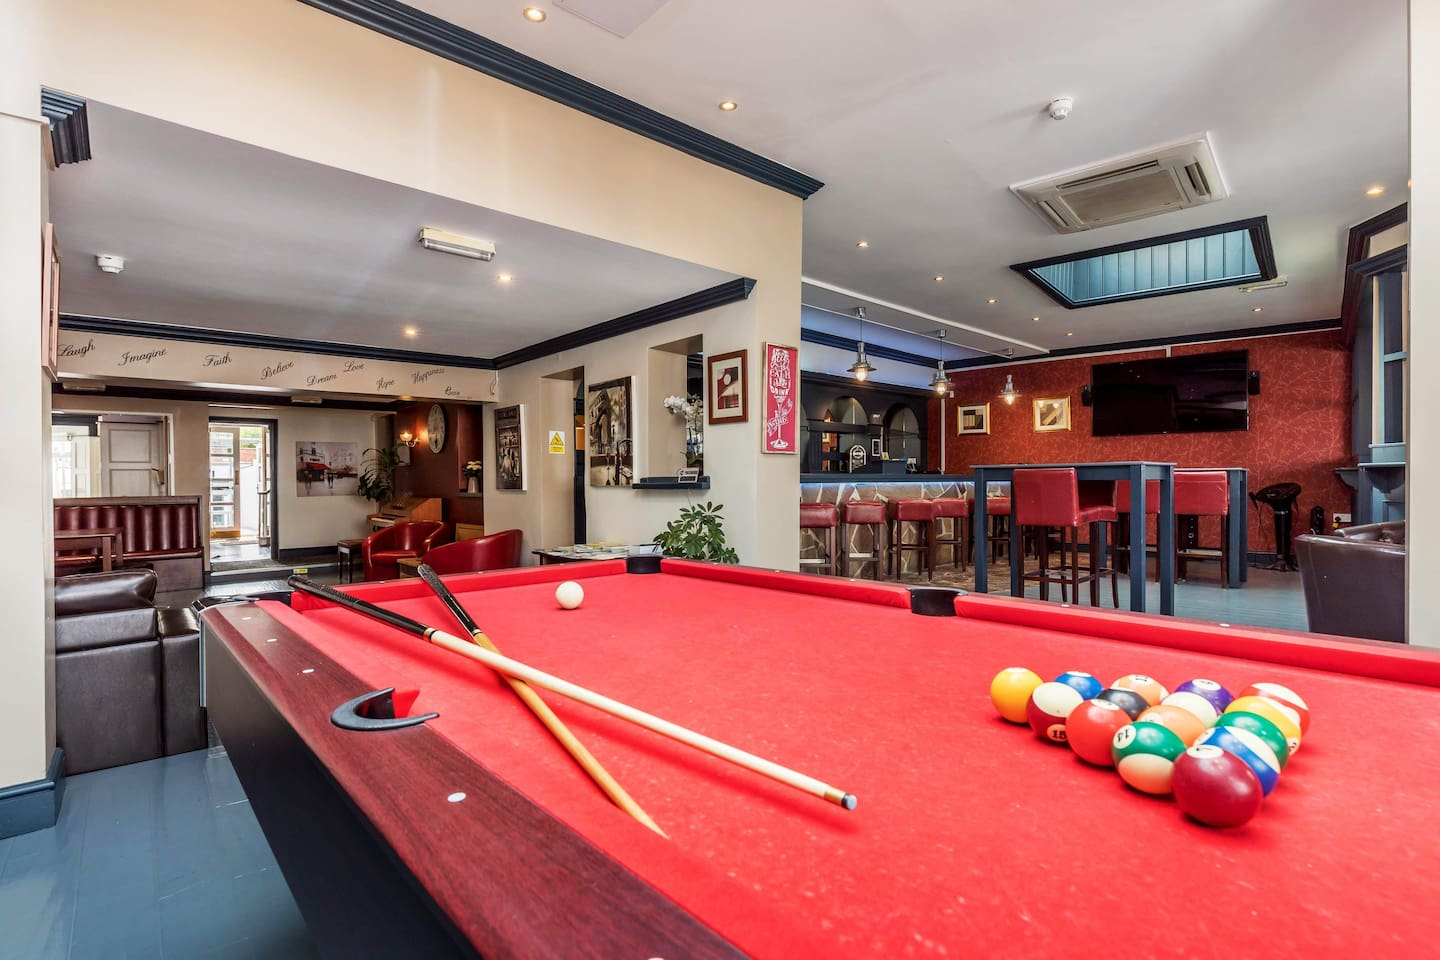 Lots of free extras free pool - arcade games - table tennis and air hockey